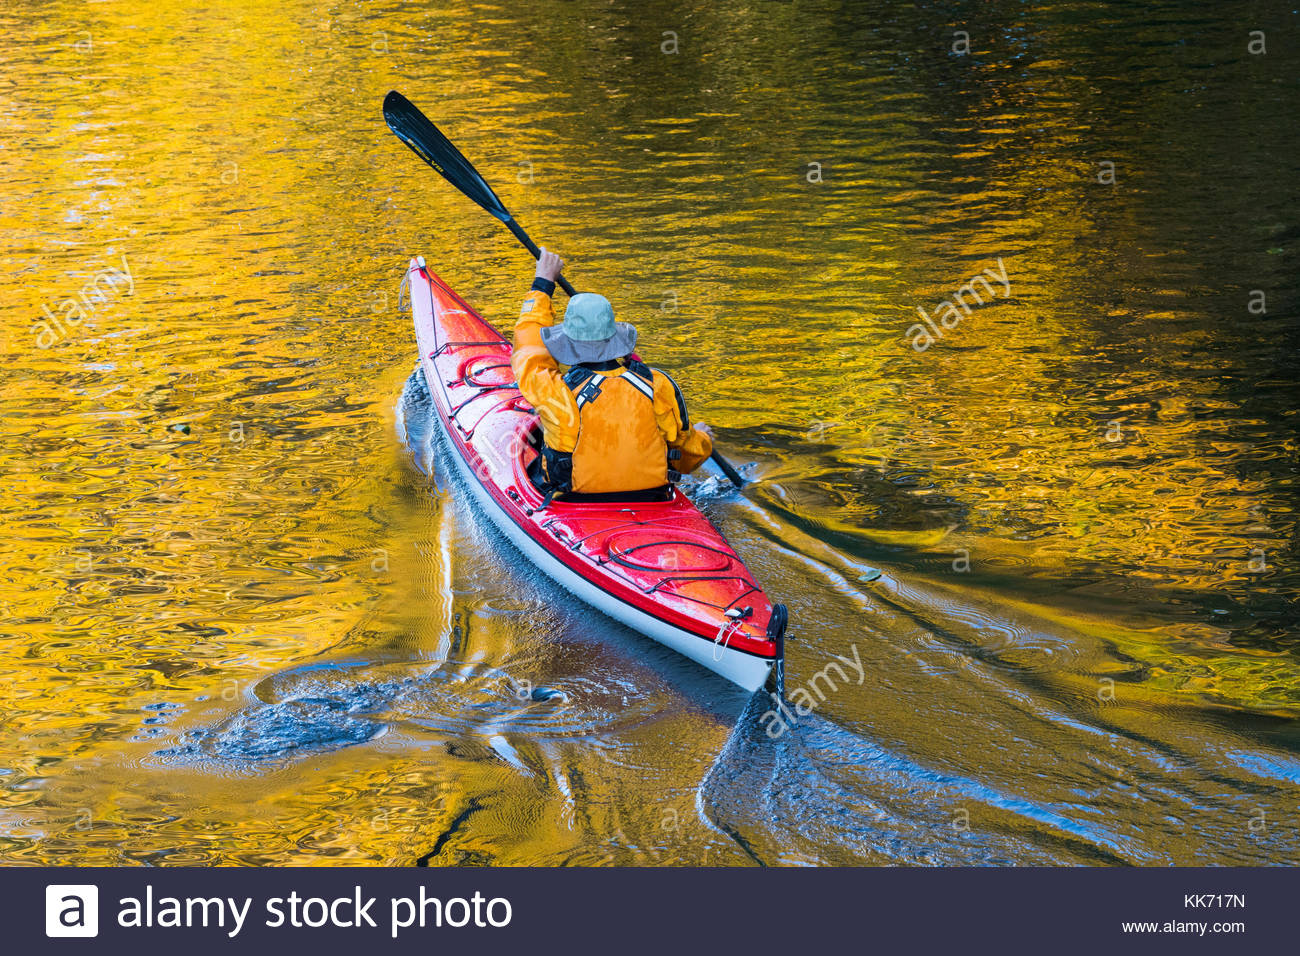 A kayaker plies the waters of the Sammamish River in Bothell, Washington, which reflect the golden fall color of - Stock Image